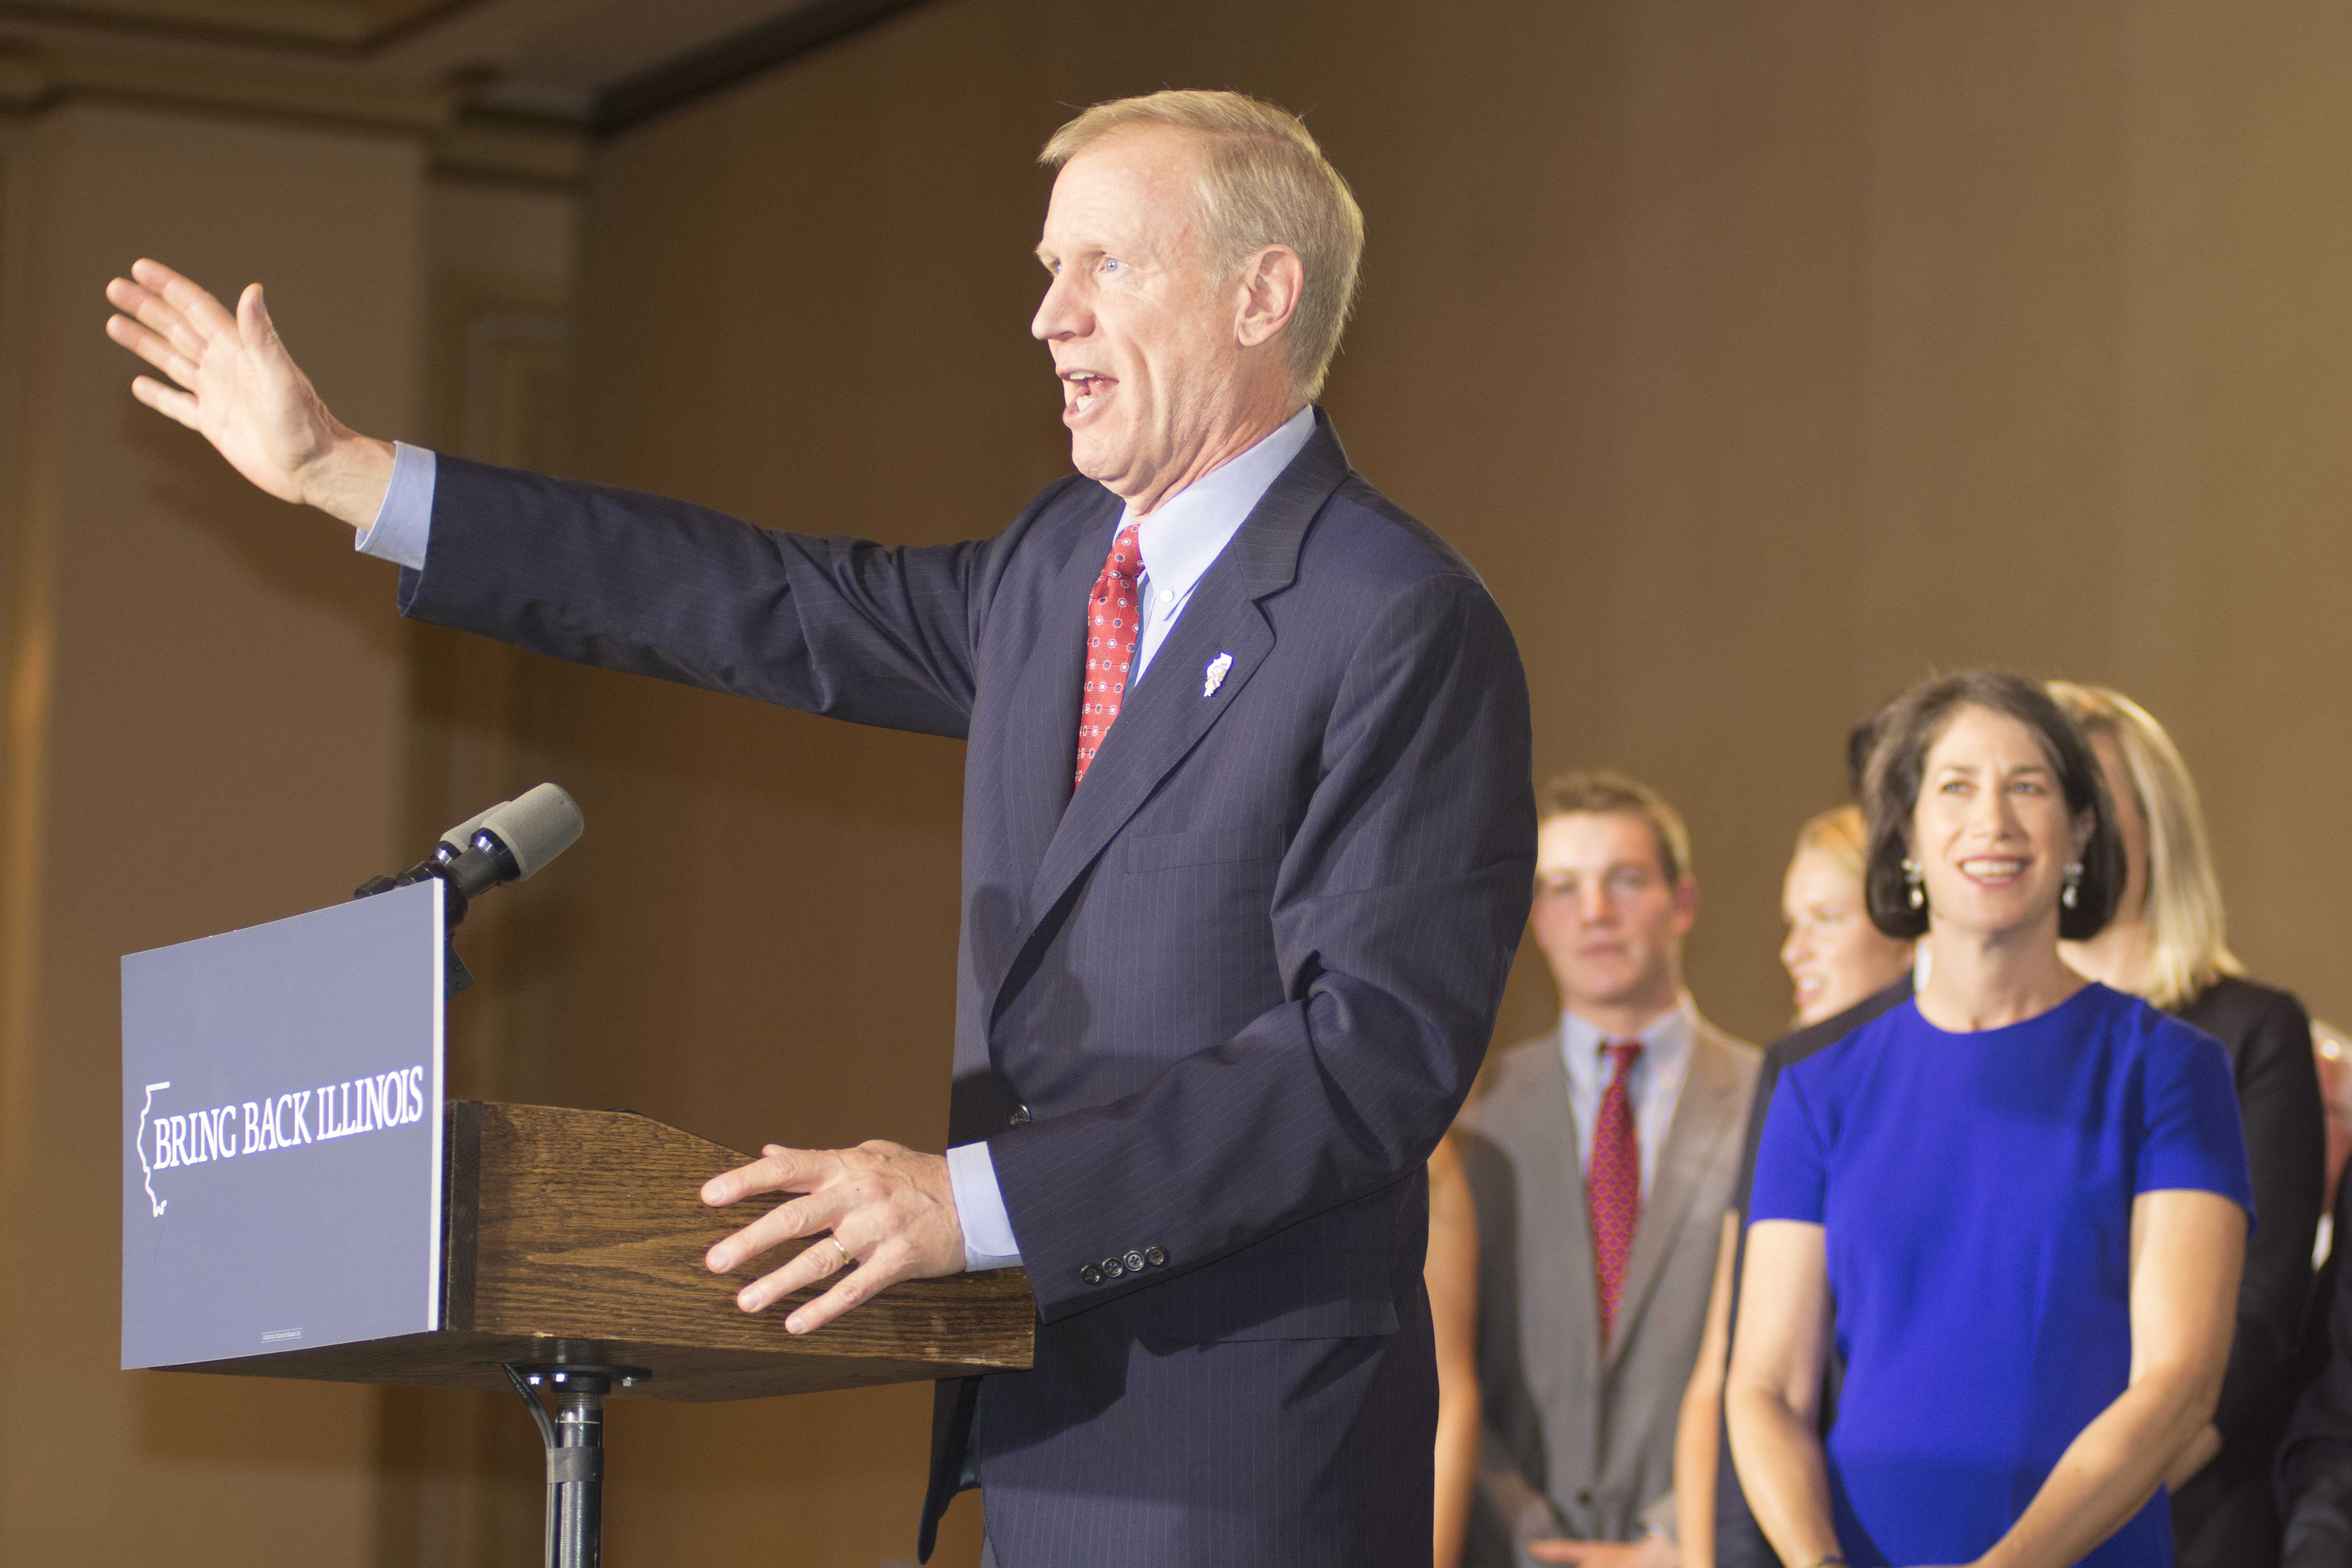 Republican Bruce Rauner speaks to a crowd of supporters Tuesday night at the Hilton Chicago. Rauner beat Gov. Pat Quinn to become the first GOP Illinois governor in 12 years.